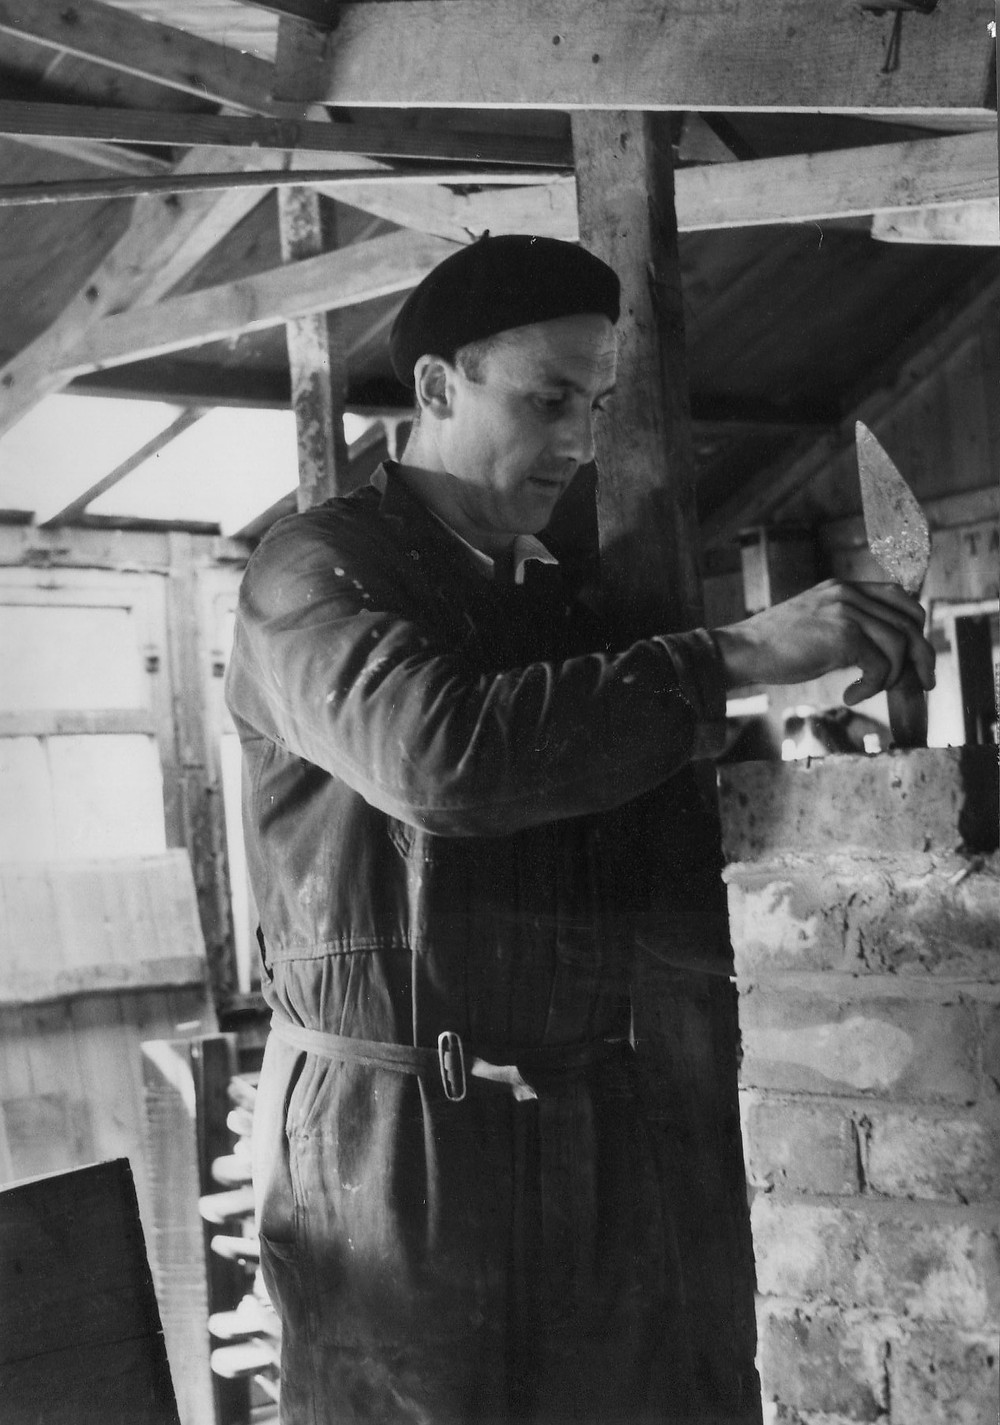 White male wearing a beret and overalls with a trowel in his hand held over a brick wall